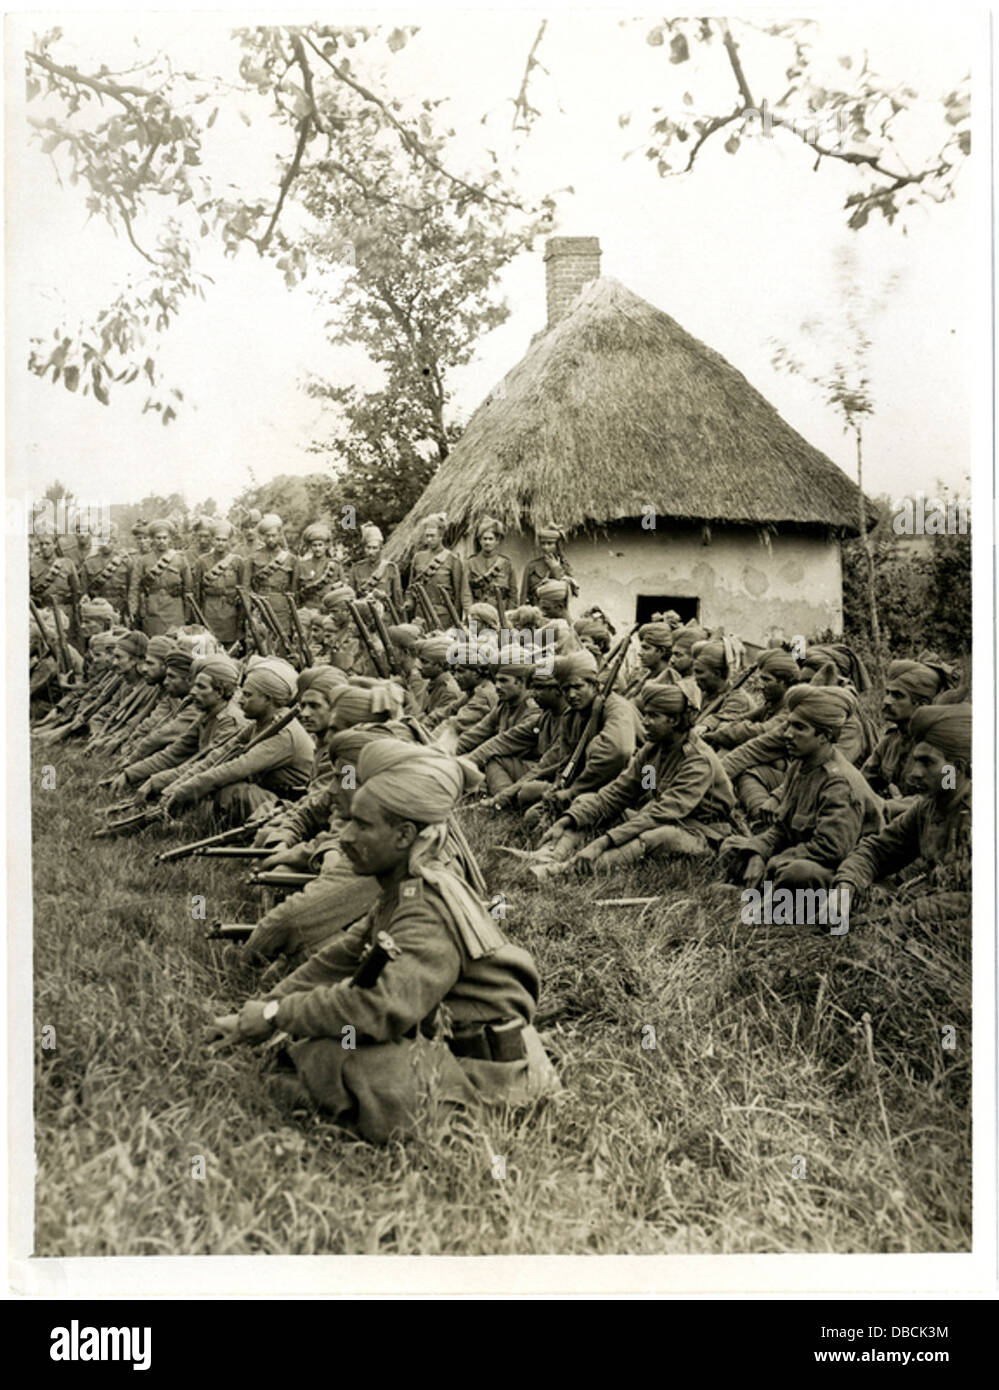 Some N.C.O.s and men of the 57th Rifles (Photo 24-278) - Stock Image